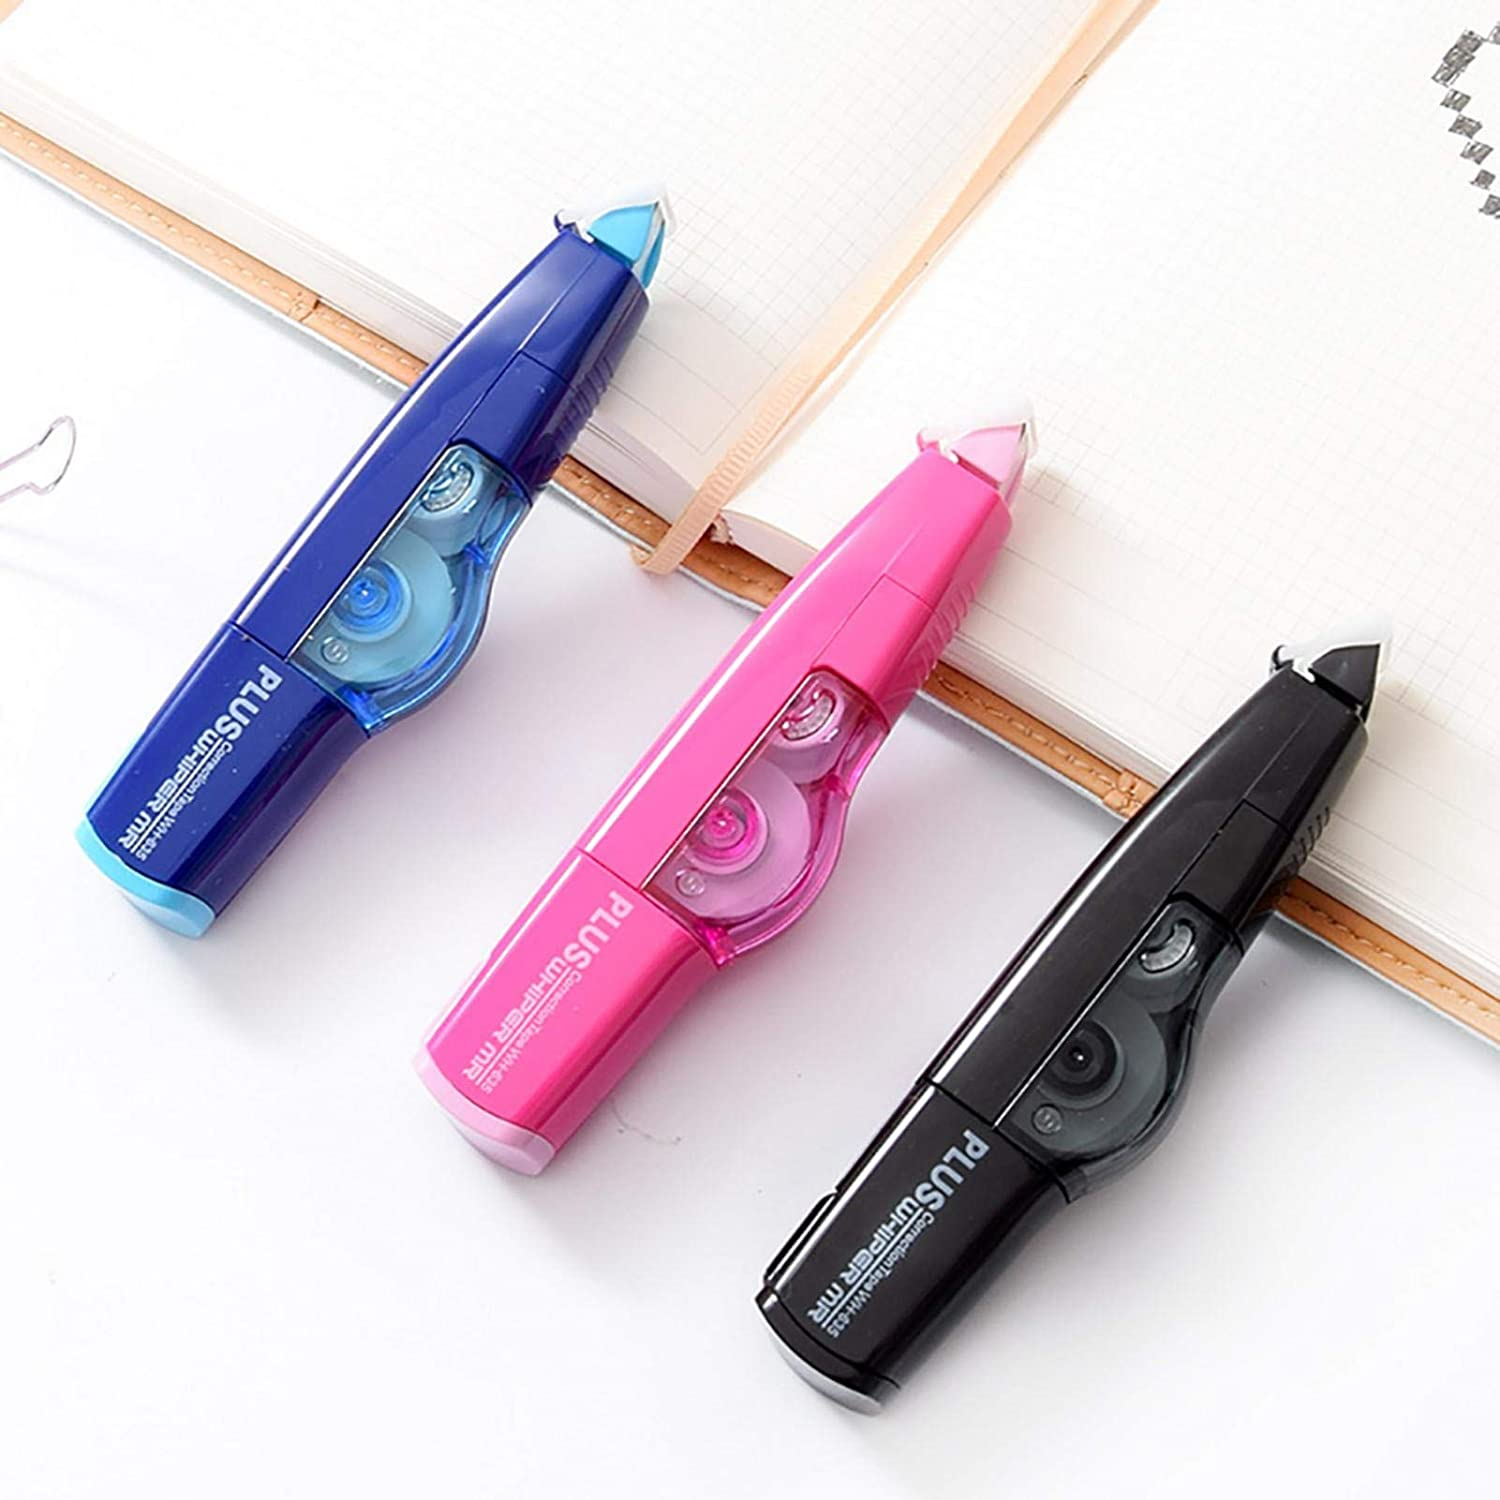 Lamptti Mini Correction Tape Environmental Protection Refillable Correction Tape Practical Correction Tape Sticker Study Office Stationery Tool for Students